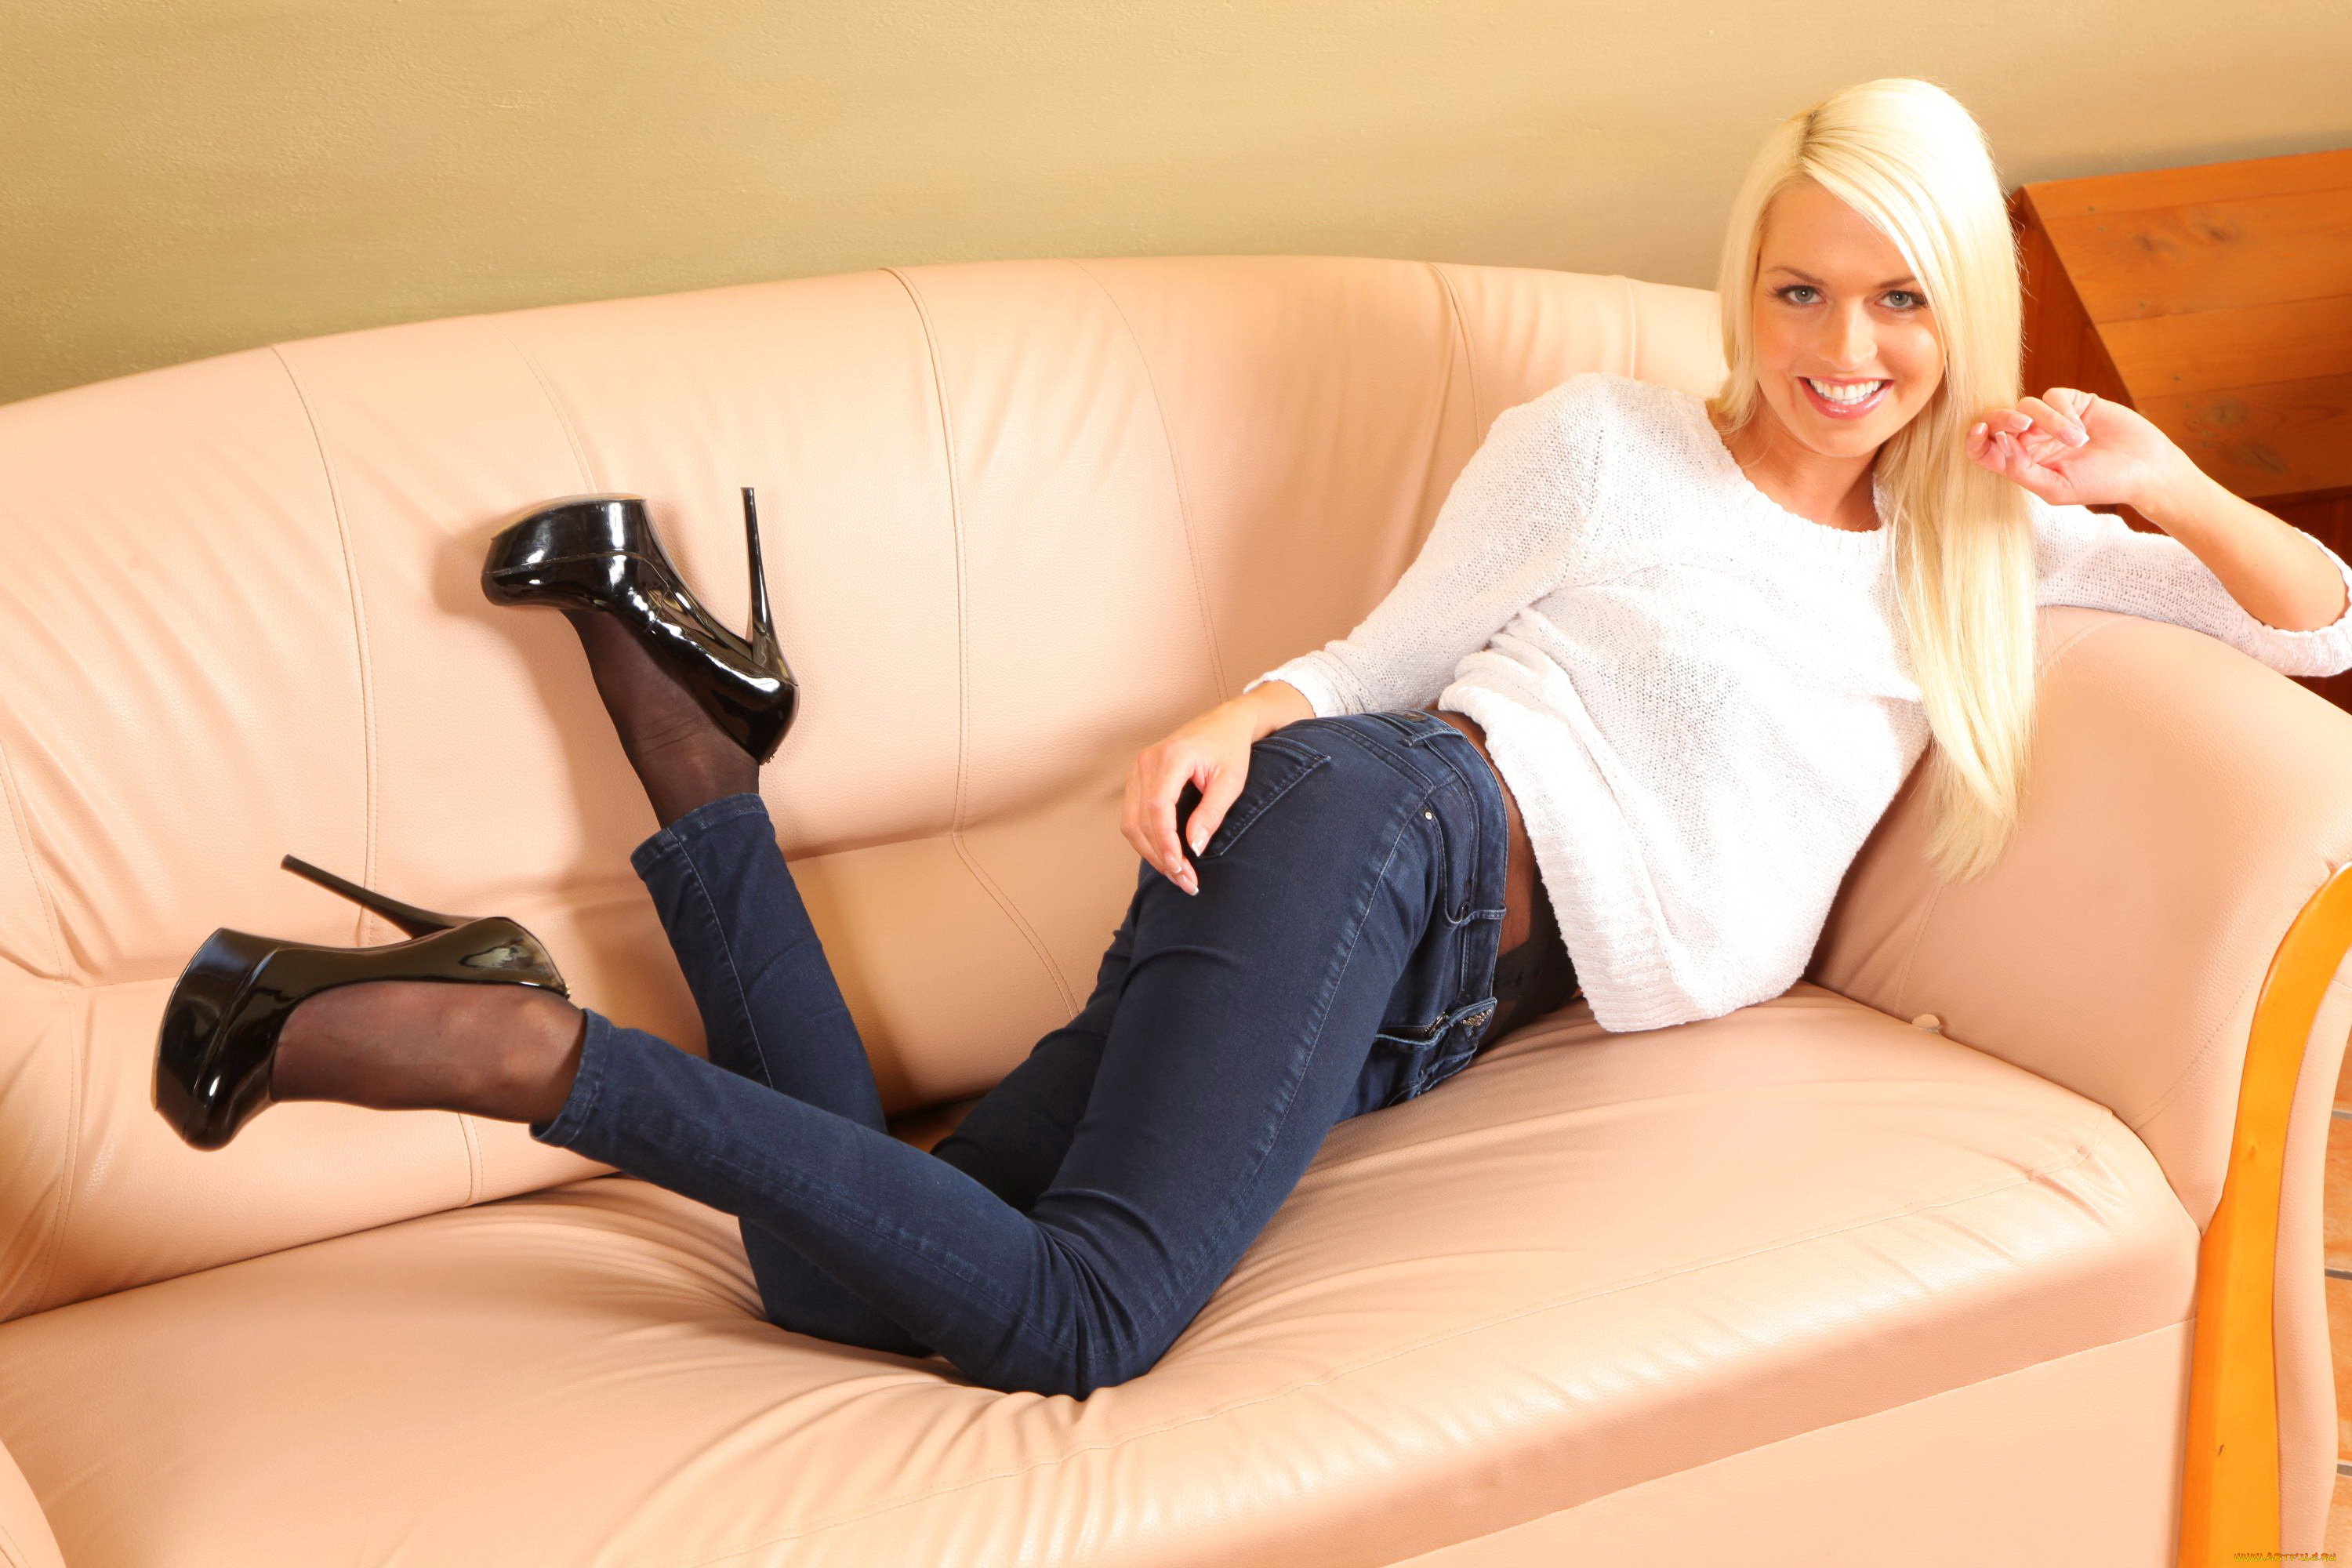 Jeans and pantyhose woman, amatuer teen anal sluts